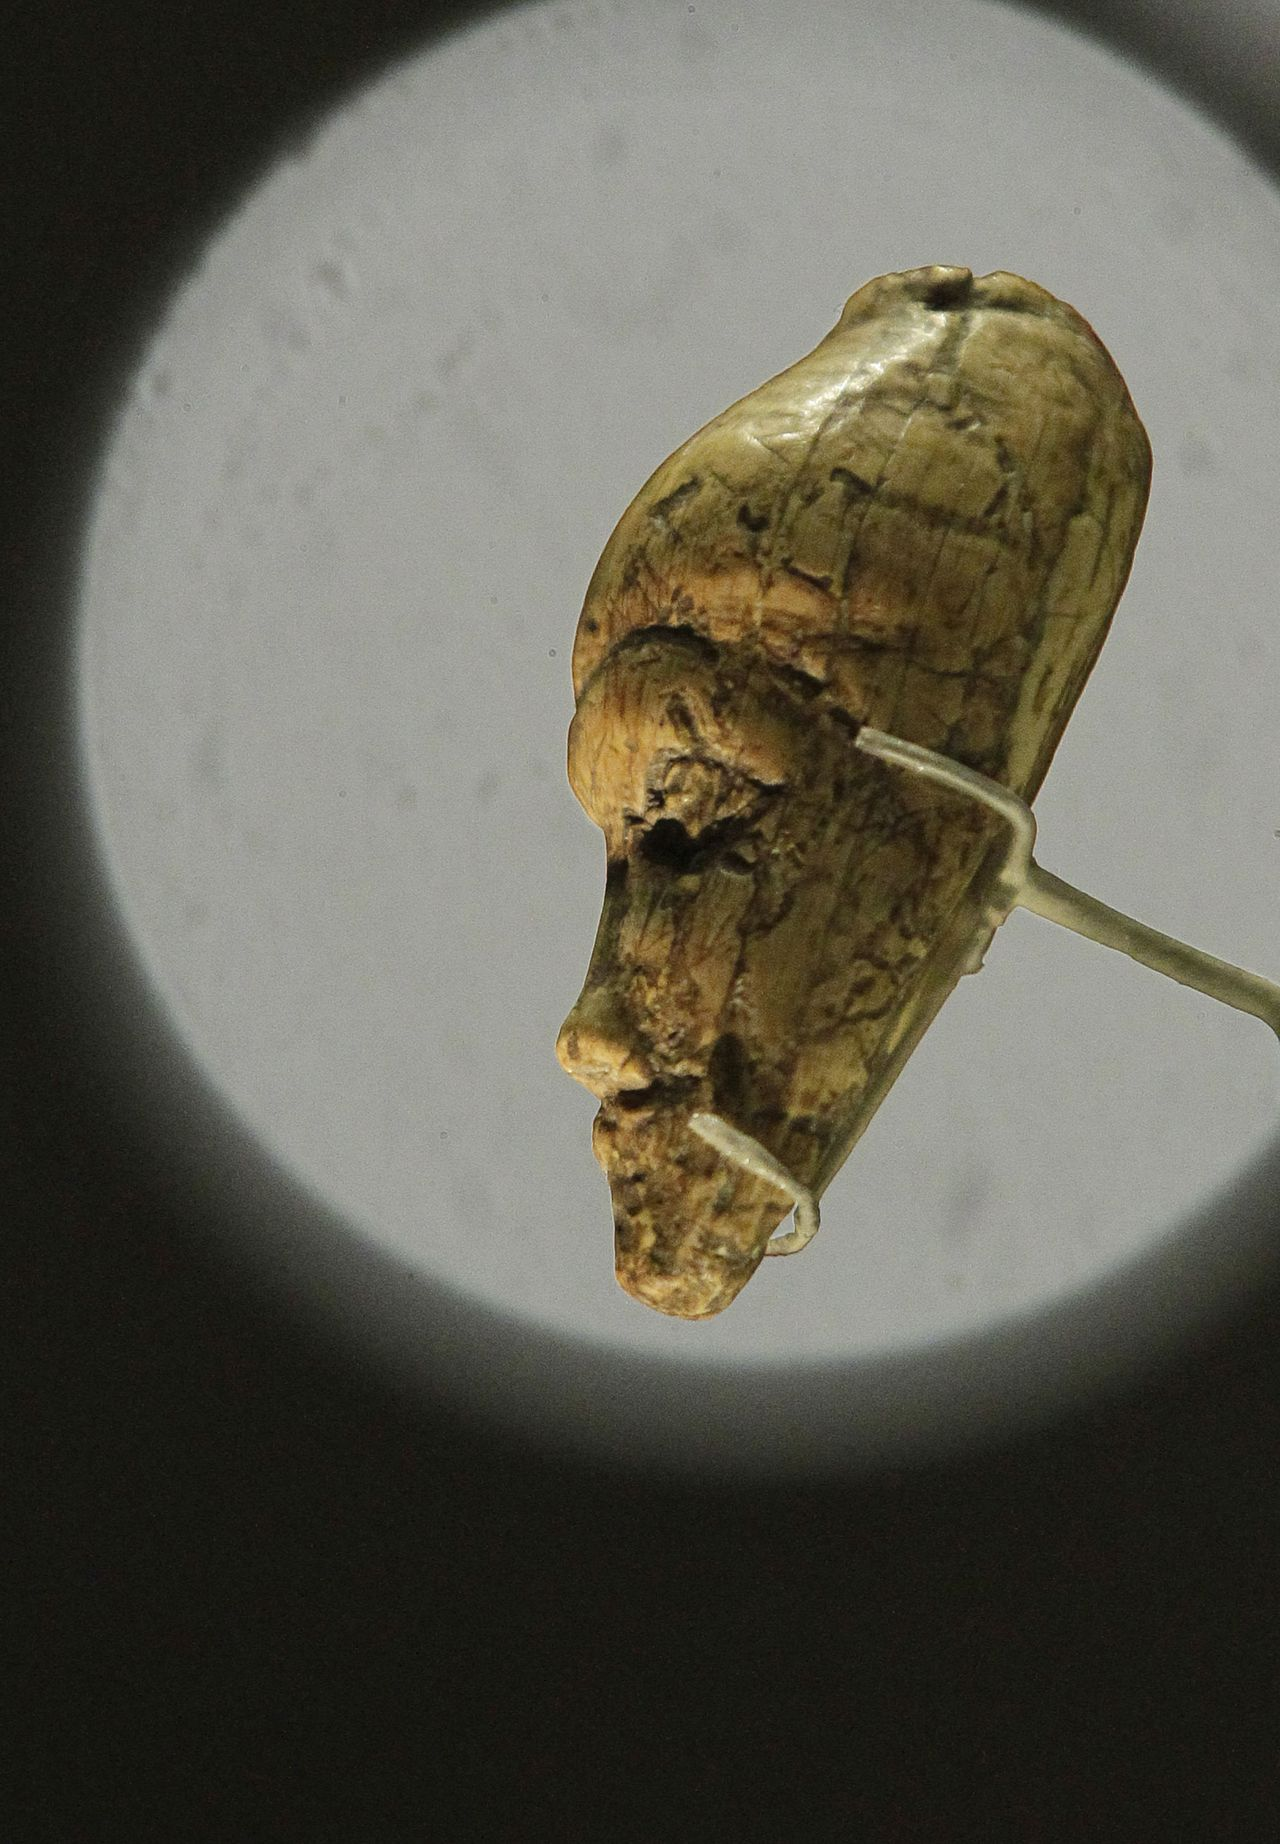 An oldest known portrait of a woman sculptured from mammoth ivory dates at least 27,000 old, discovered at Dolni Vestonice, Moravia, Czech Republic is seen on display in an exhibition 'Ice Age Art : arrival of the modern mind' at the British Museum in London, Tuesday, Feb. 5, 2013. The sculpture The exhibition present masterpieces create from the last Ice Age between 40,000 and 10,000 years ago, drawn from across Europe, by artists with modern minds and presented alongside modern works to illustrate the fundamental human desire to communicate and make art as a way of understanding ourselves and our place in the world. (AP Photo/Sang Tan)